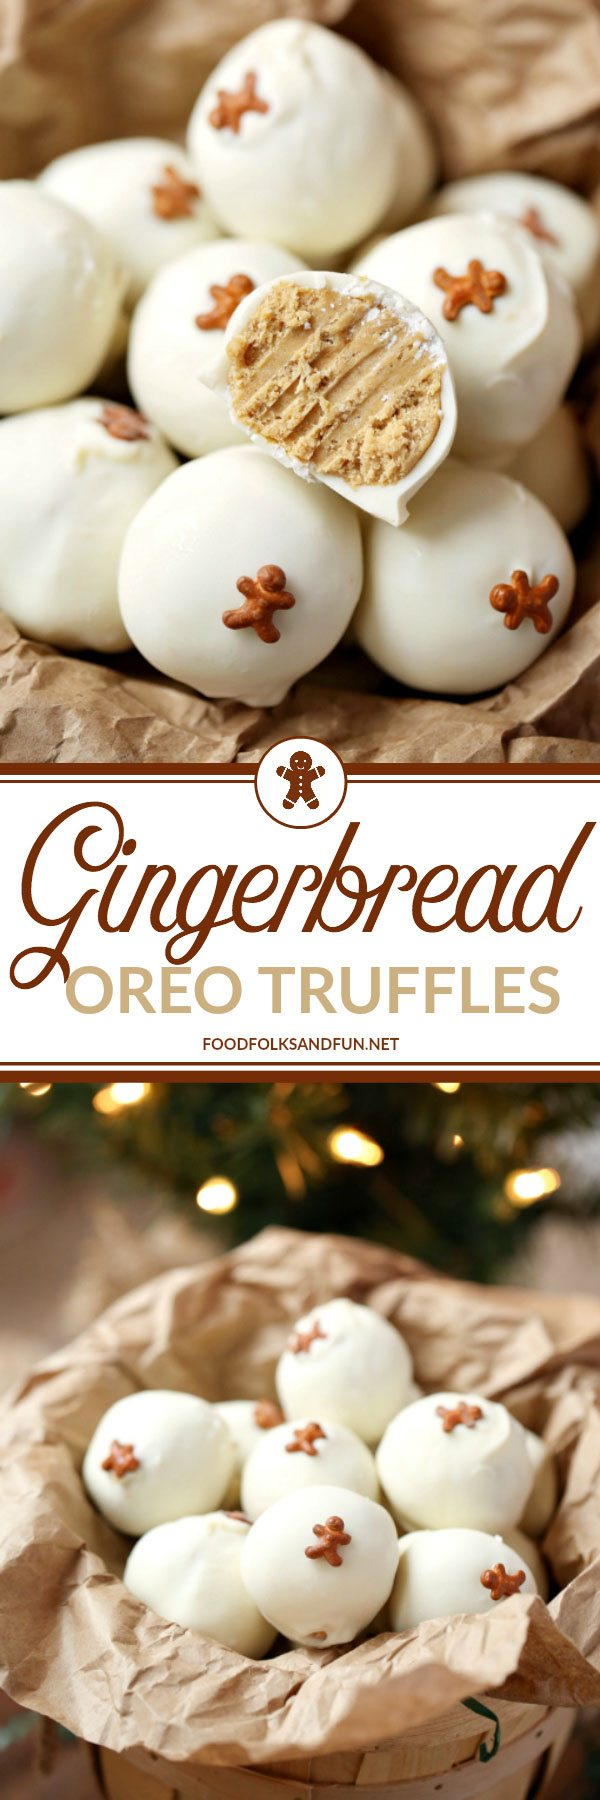 These Gingerbread OREO Truffles are easy holiday treats that are great for Christmas parties, cookie exchanges, and gifting! Picture tutorial and recipe video included! These have been shared over 70,000 times! via @foodfolksandfun